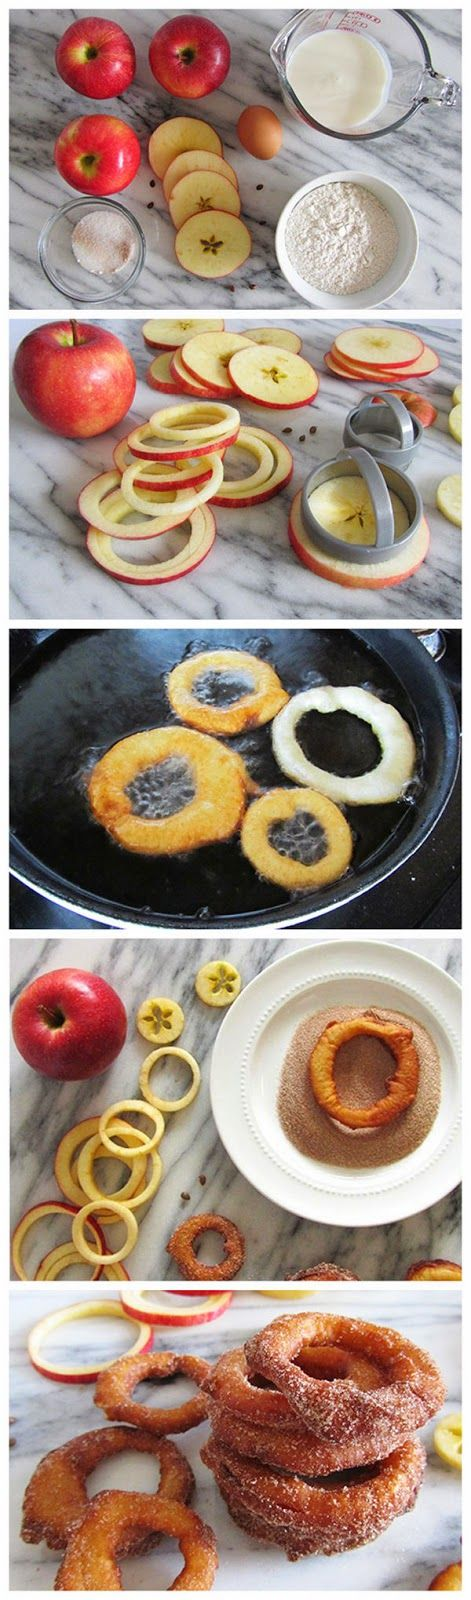 Easy to make cinnamon apple rings. And they're healthy! (well, for a dessert...)